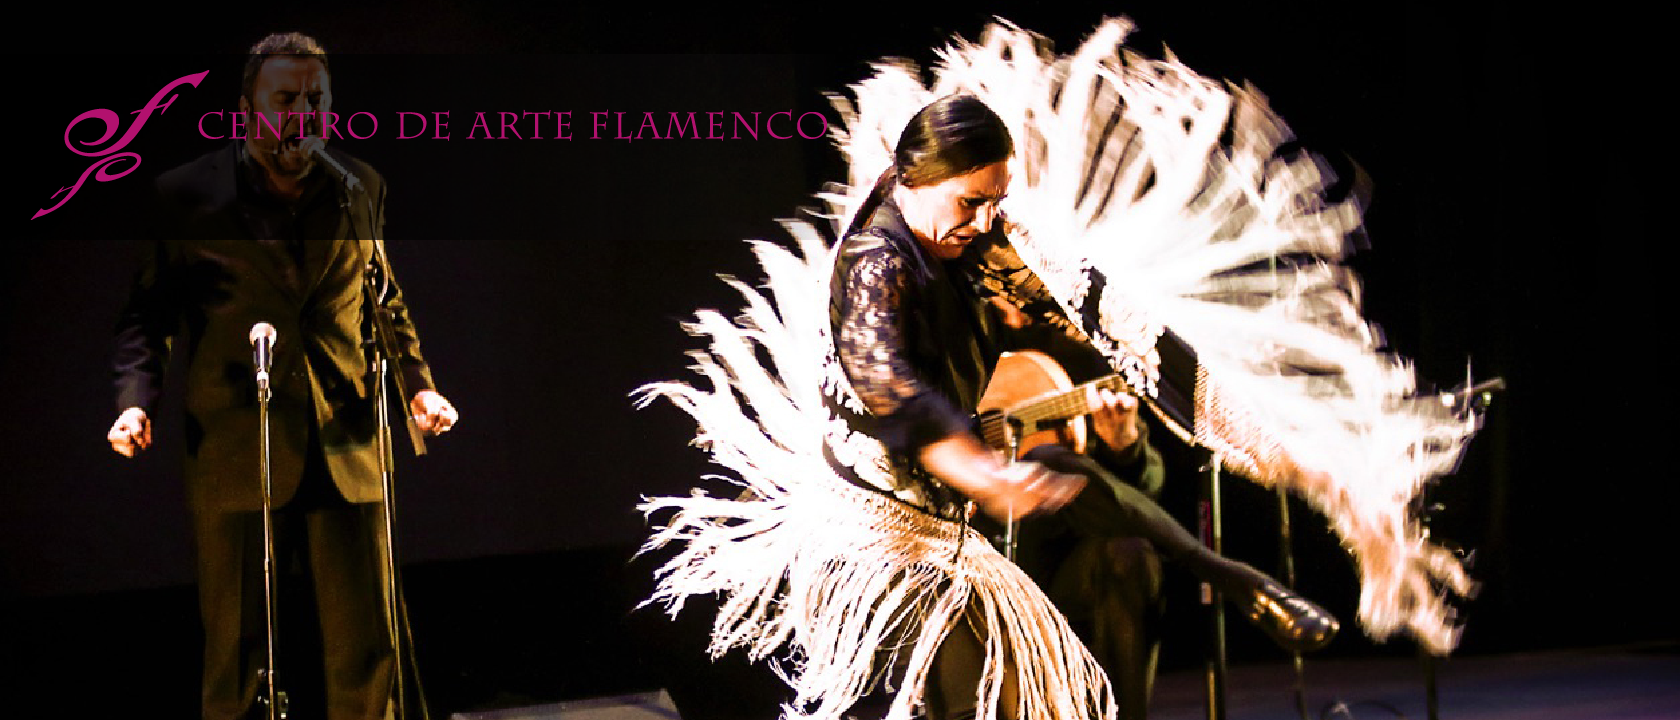 Flamencoworkshops mit Concha Jareño: April 2020